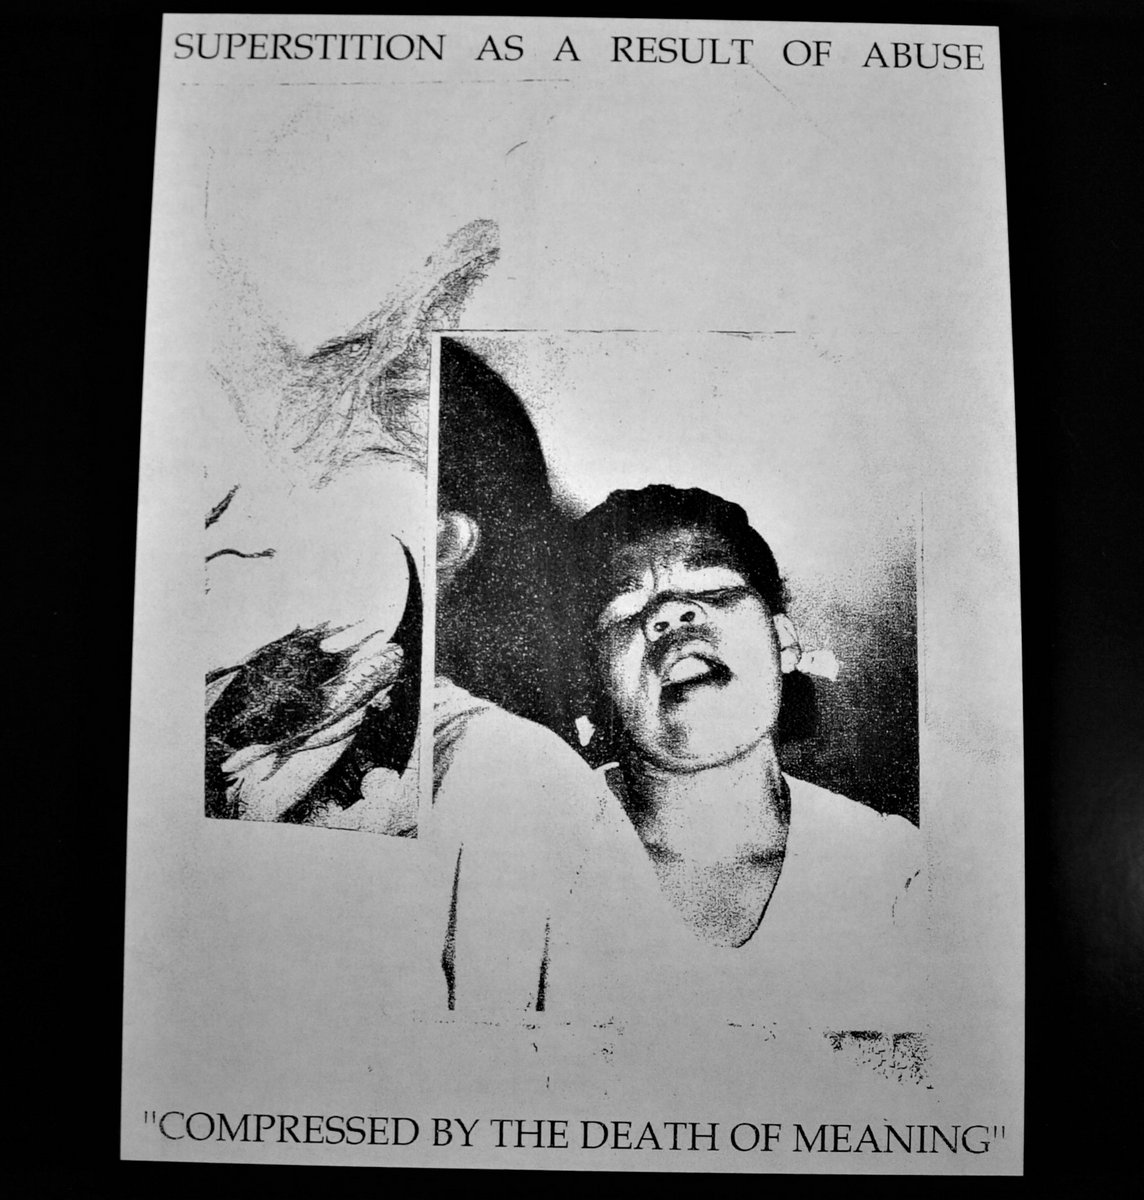 superstition as a result of abuse compressed by the death of